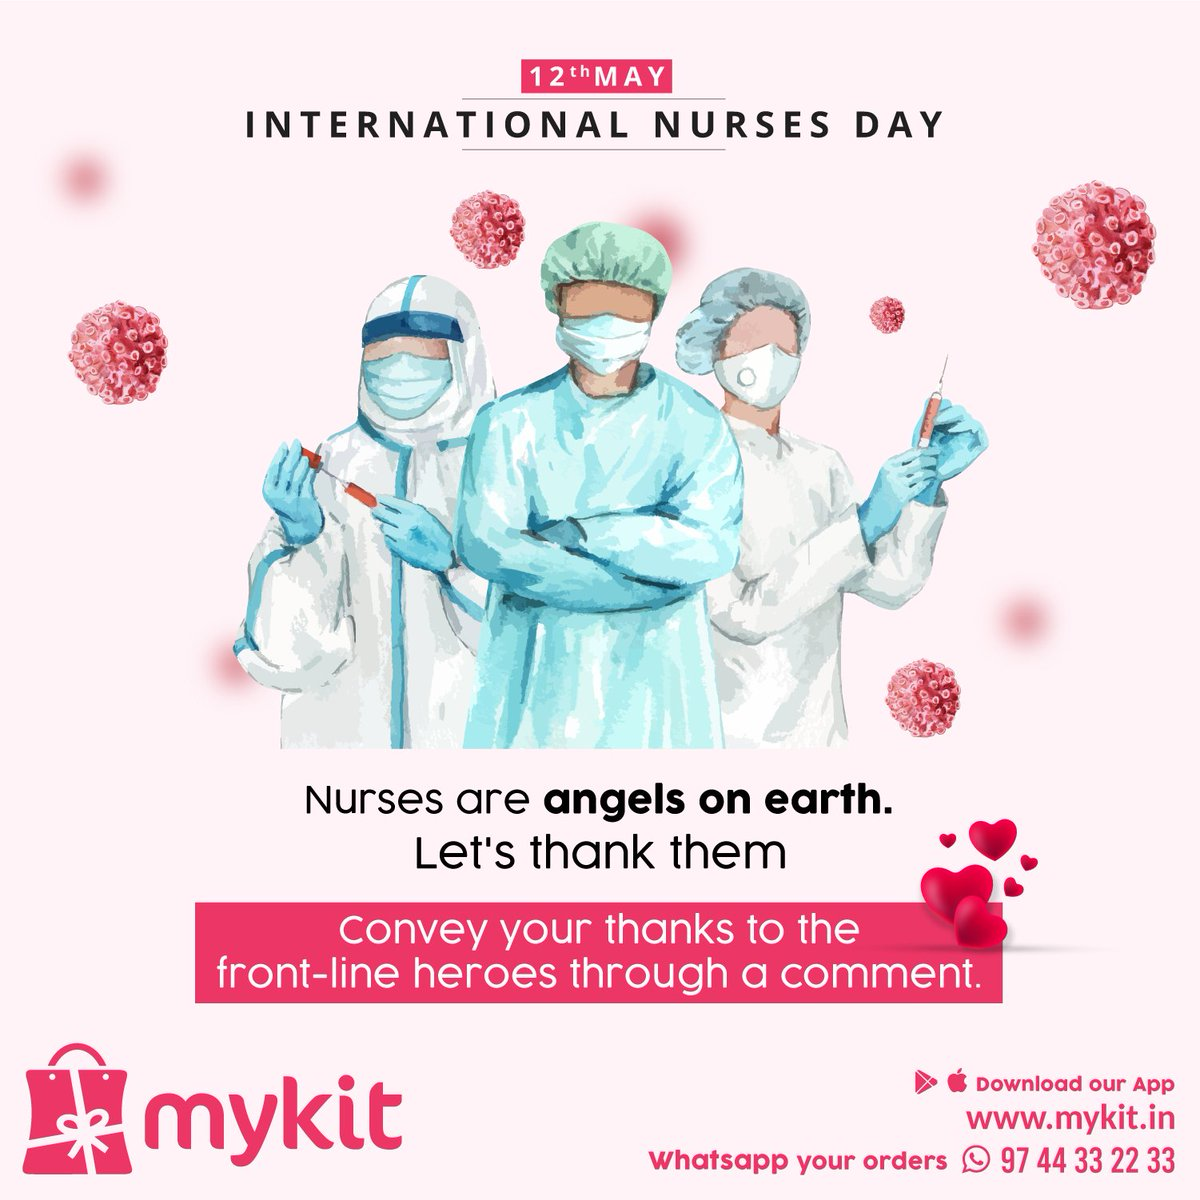 Nurses are angels on earth. Let's thank them. Convey your thanks to the front-line heroes through a comment.  International Nurses Day  #mykitcart #mykit  #internationalnursesday #nursesday #coronawarriors #covid19  #kannur #kerala #onlishopping #brandyourhome https://t.co/lPVCWLq3Sz